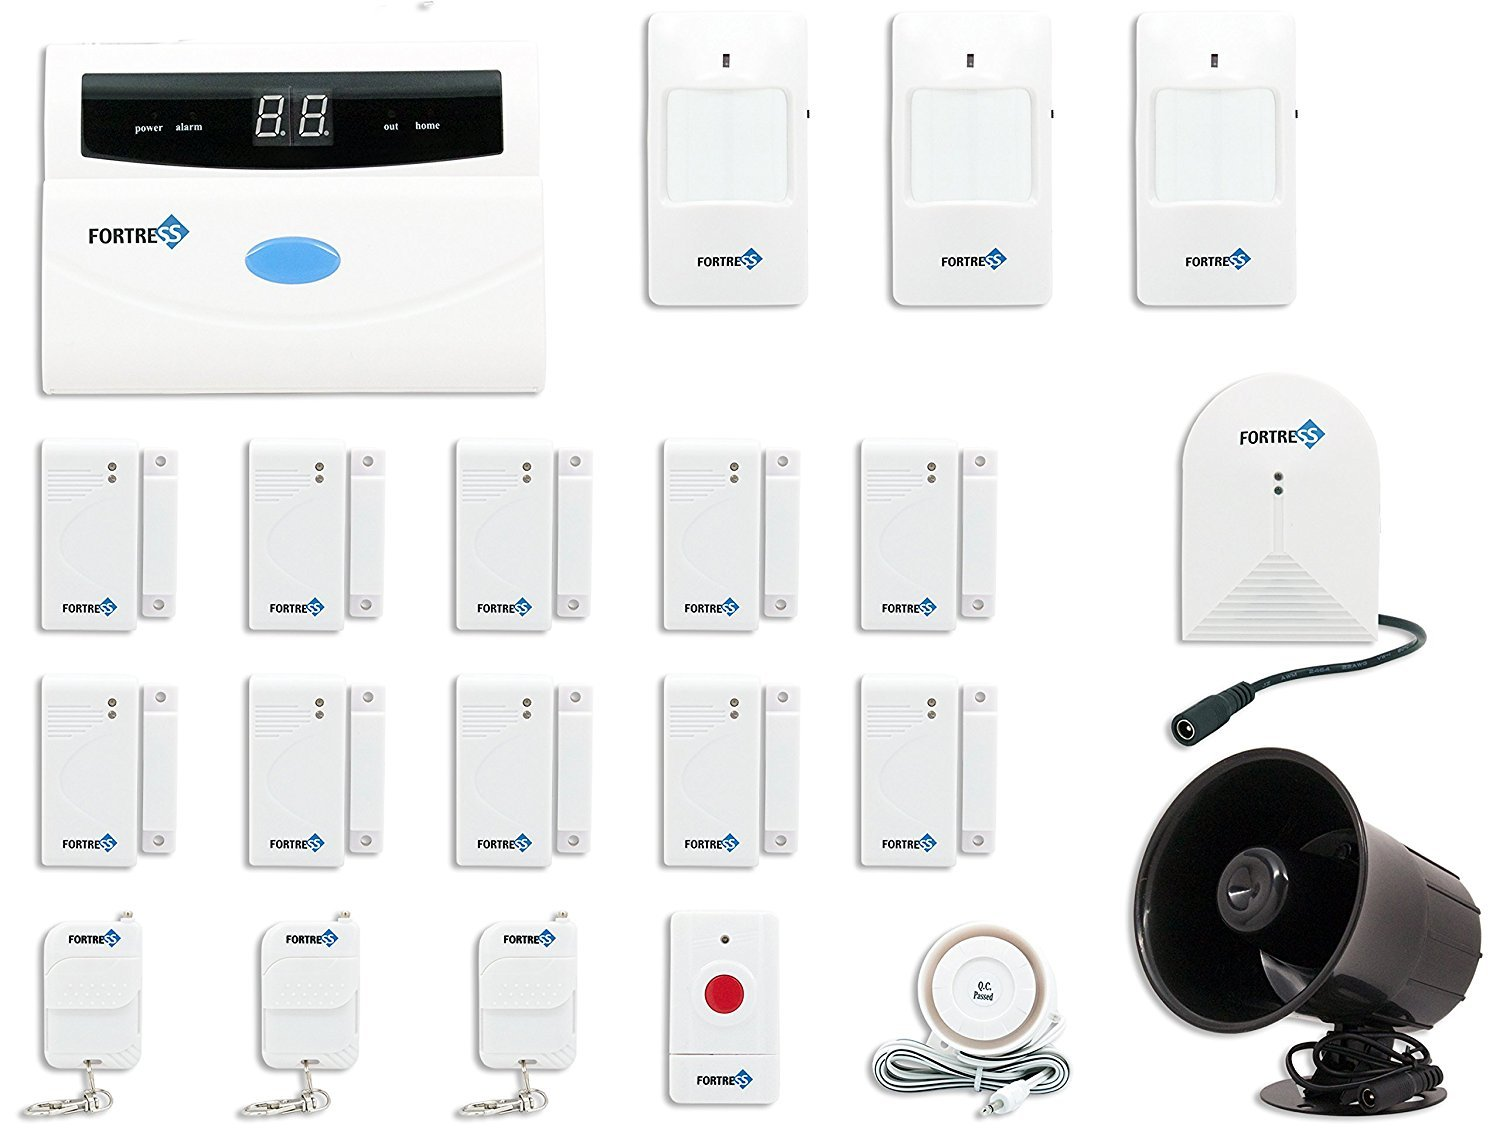 Fortress Security Store S02-E Wireless Home Security Alarm System DIY Kit with Auto Dial + Outdoor Siren, Glass Sensor & More for Complete Business and Home Security